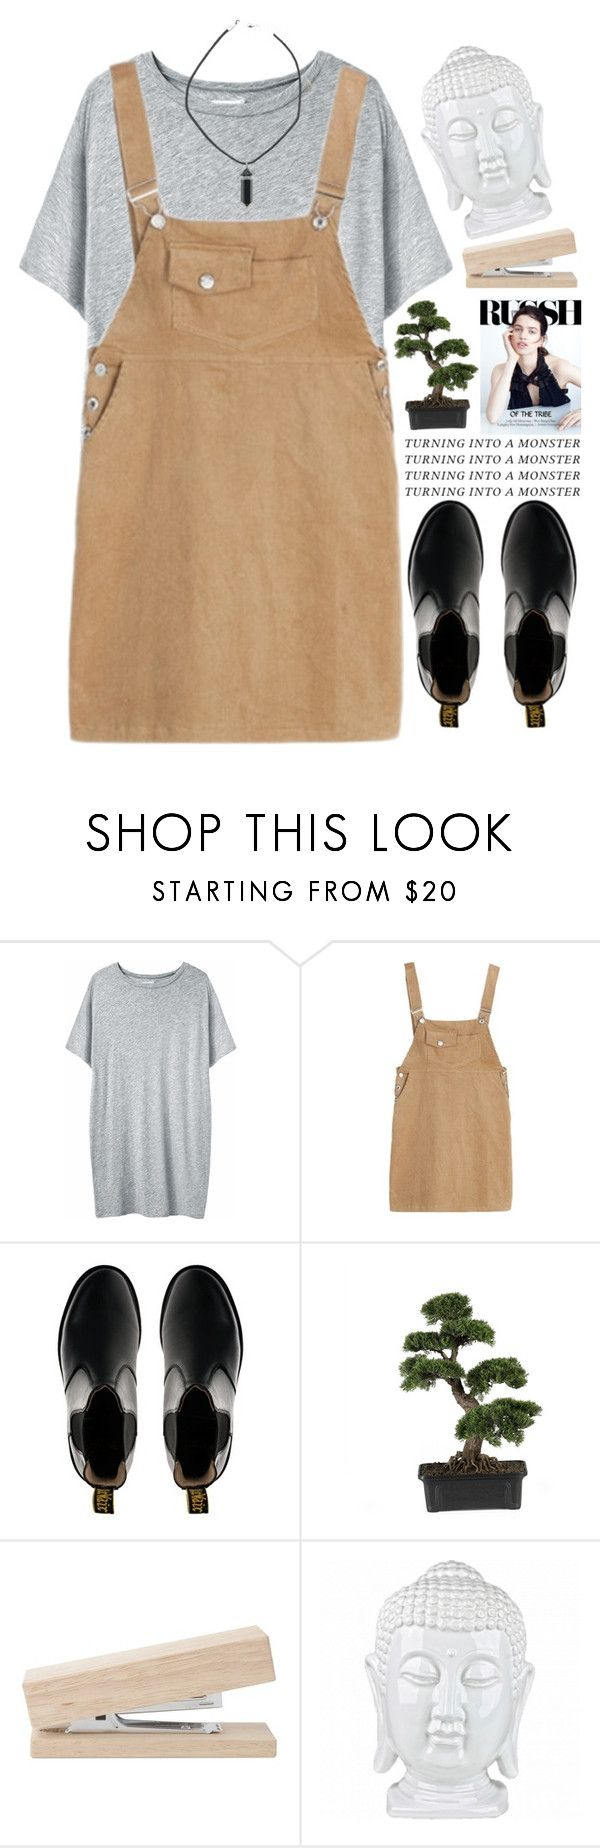 """""""Pogue."""" by sombrasdelcarax on Polyvore featuring Organic by John Patrick, Dr. Martens and Nearly Natural"""